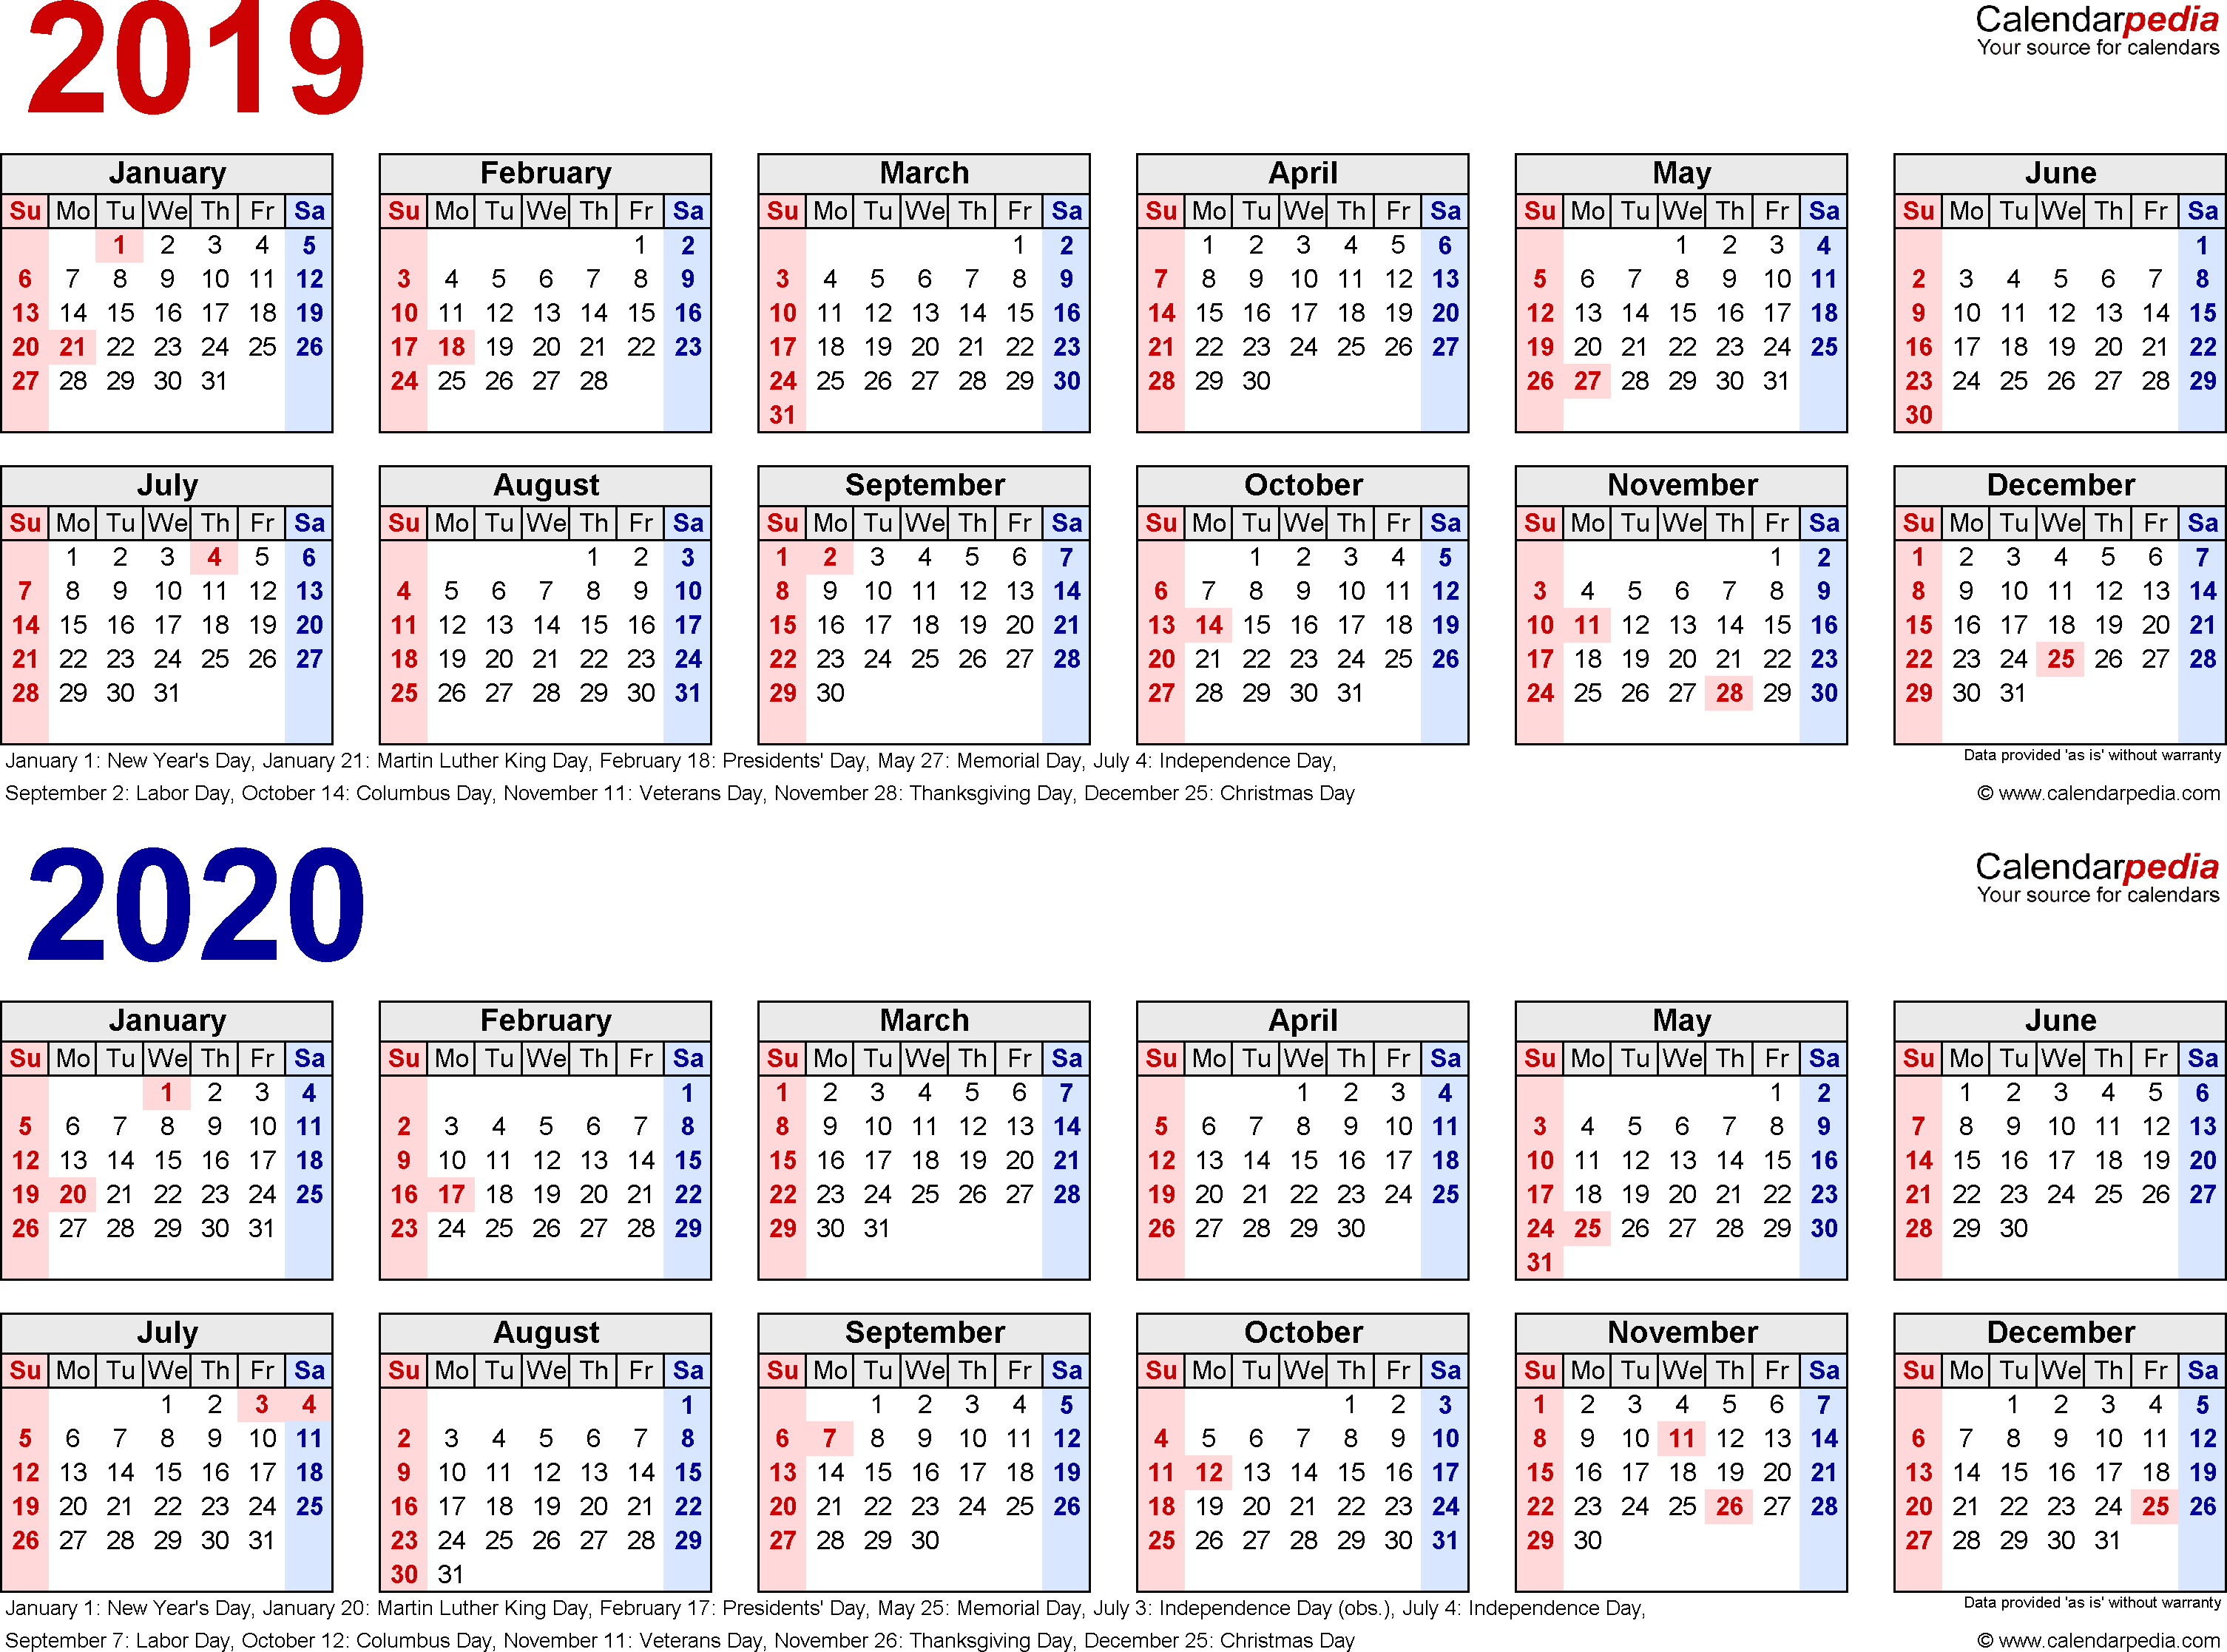 2019-2020 Calendar - Free Printable Two-Year Word Calendars pertaining to Free Fillable Printable 2019 2020 Calendar